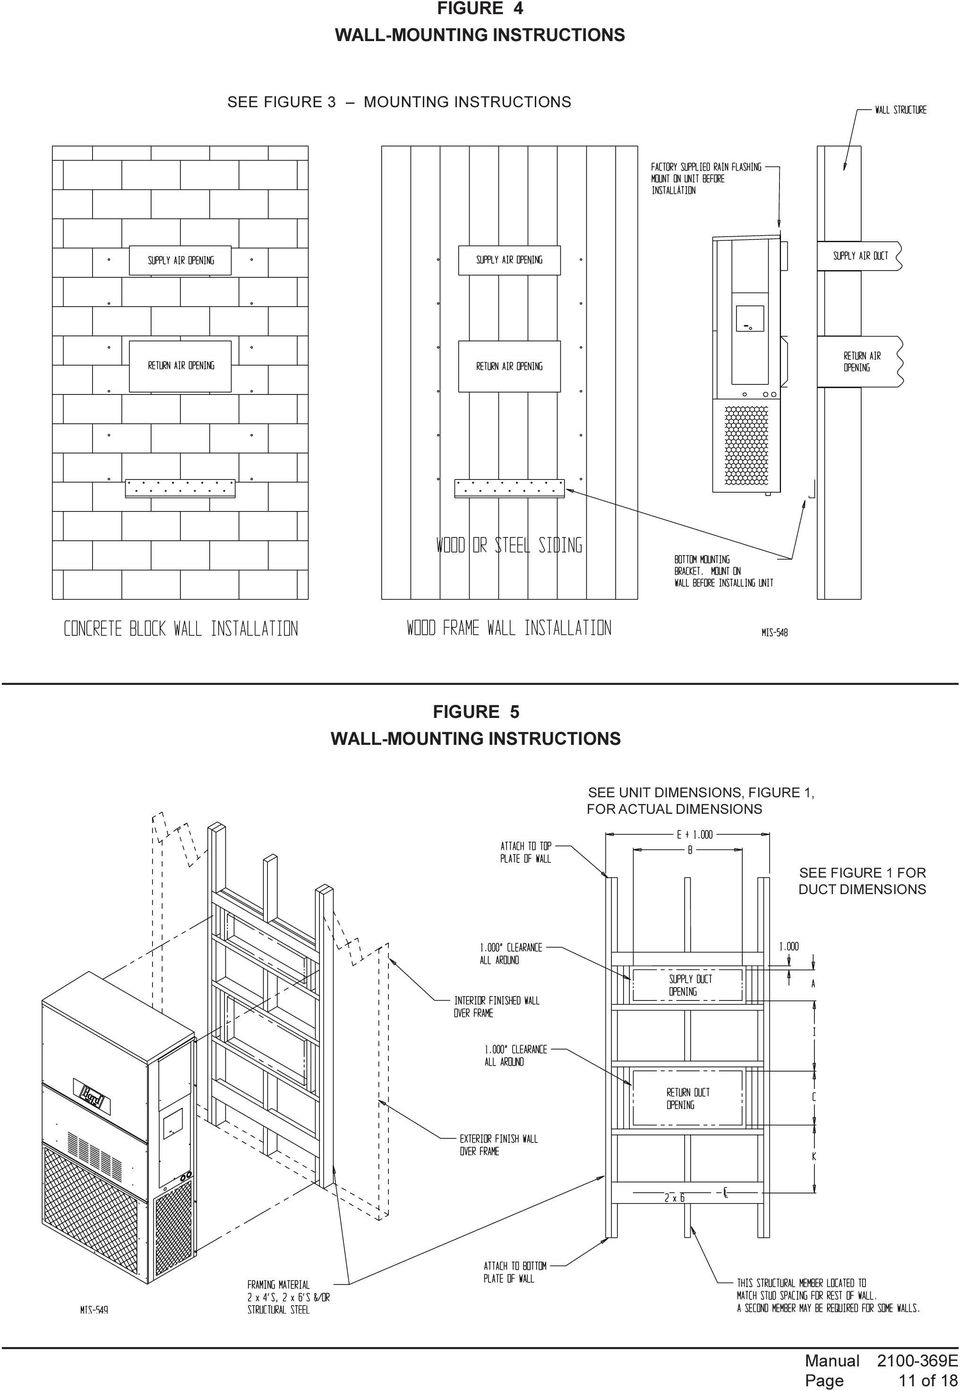 wall mounted packaged air conditioner installation instructions  models:  wa182, wa242  bard